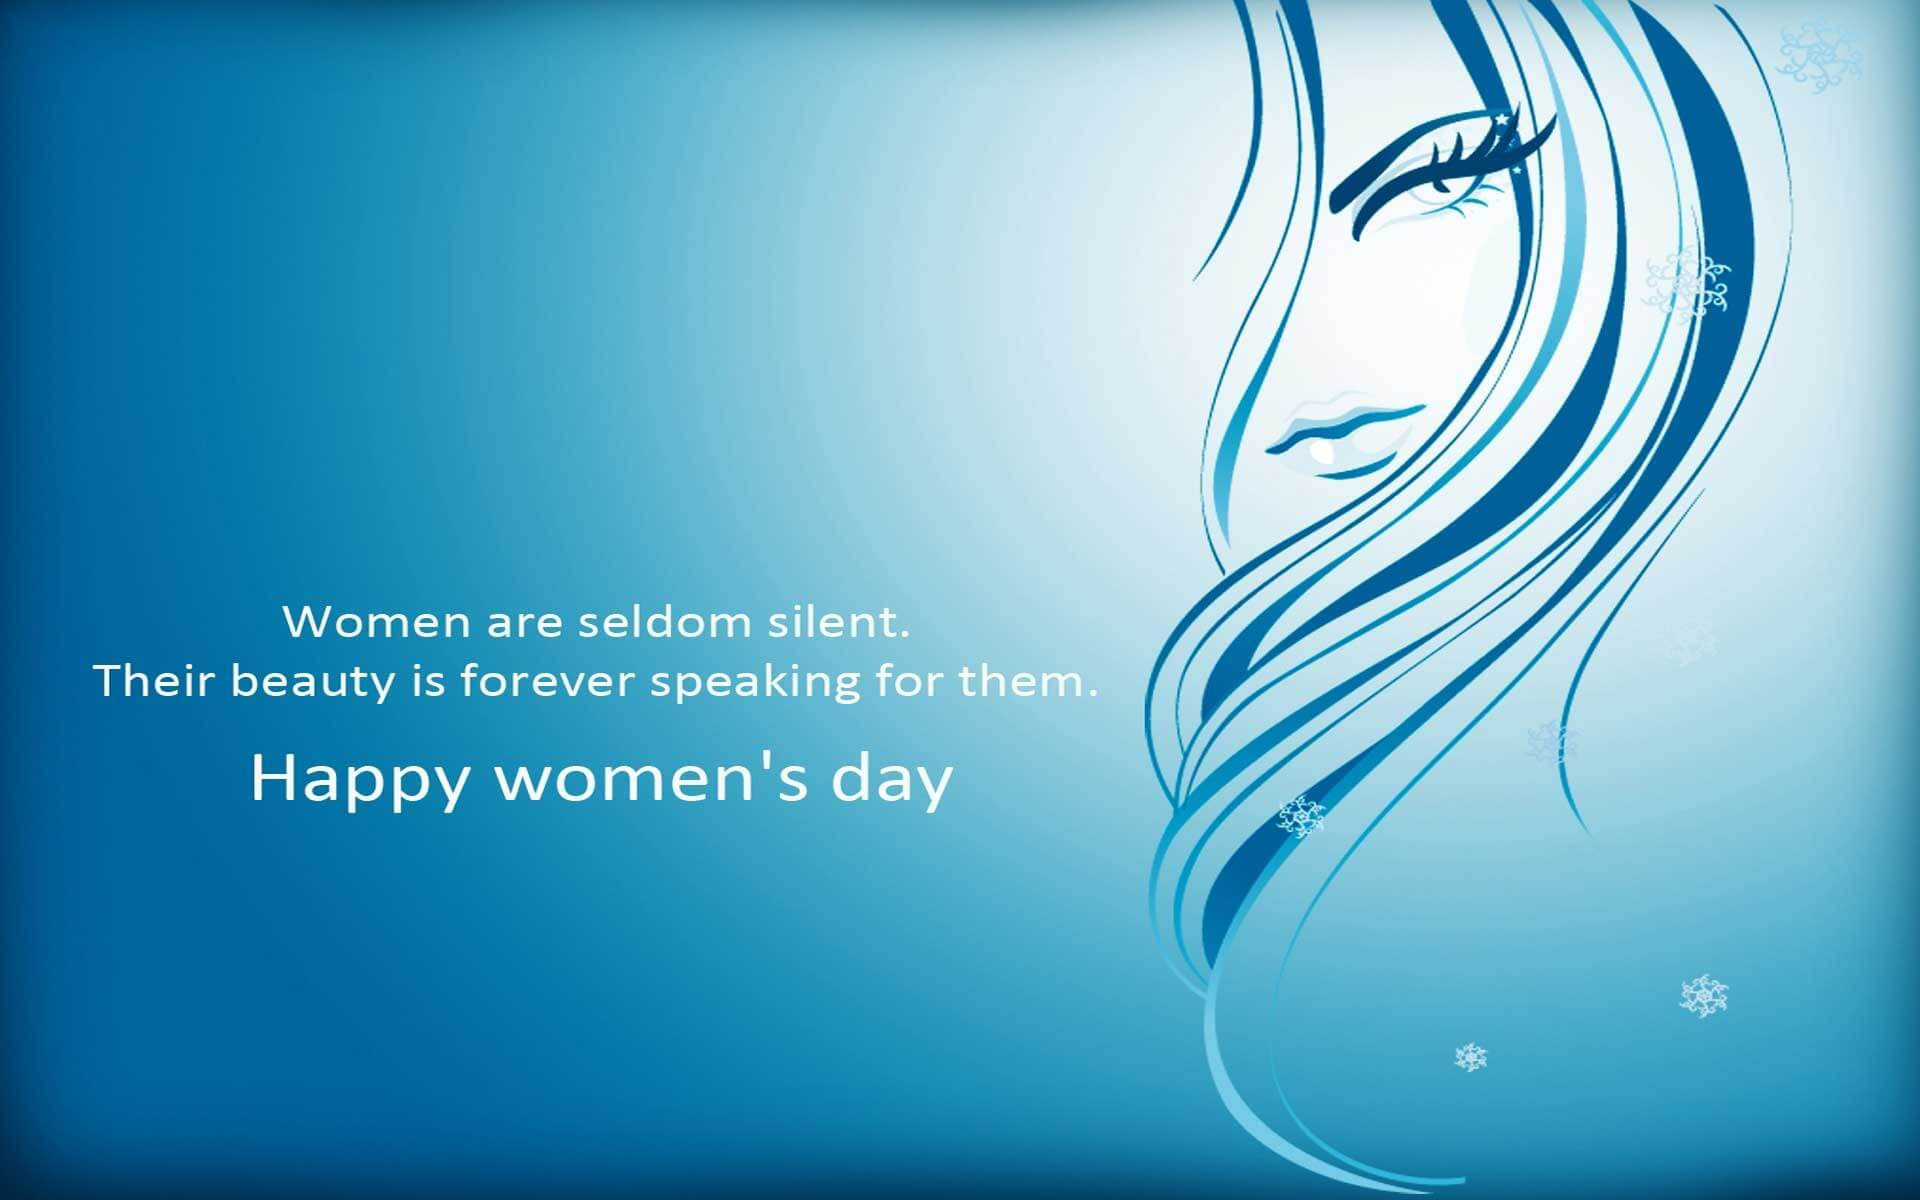 happy womens day quotes march 8 image